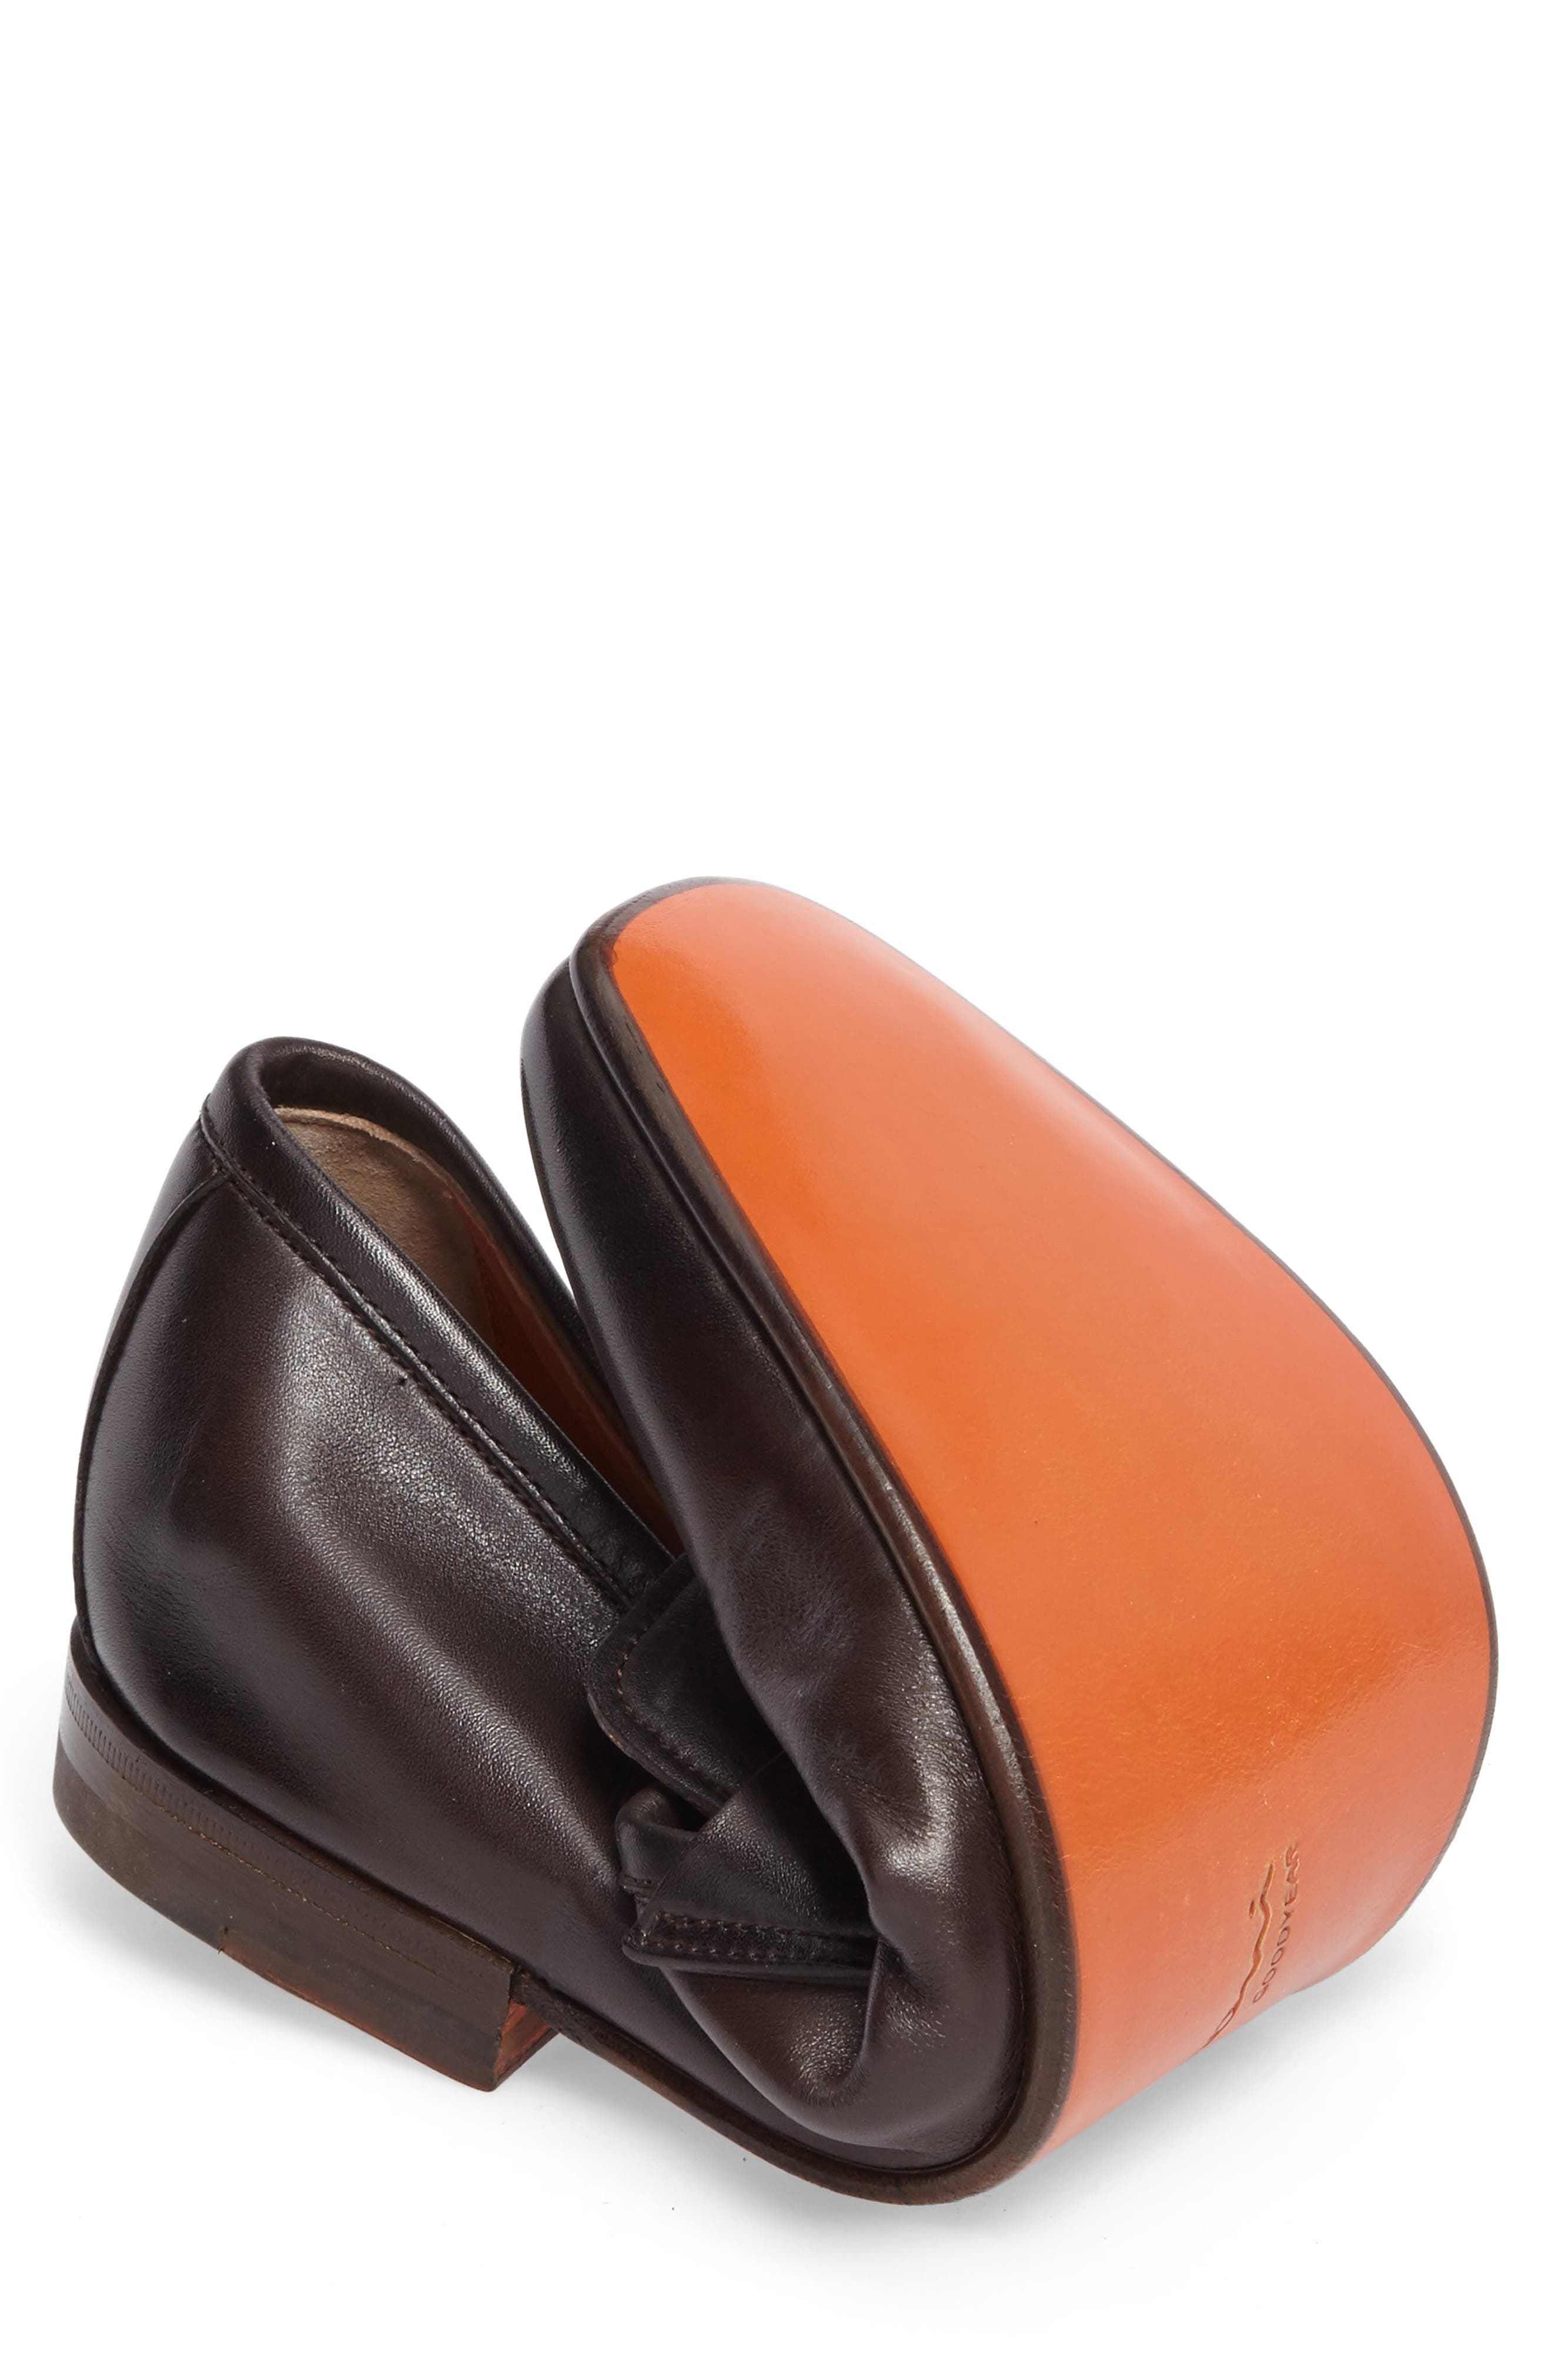 Fox Packable Penny Loafer,                             Alternate thumbnail 7, color,                             DARK BROWN LEATHER